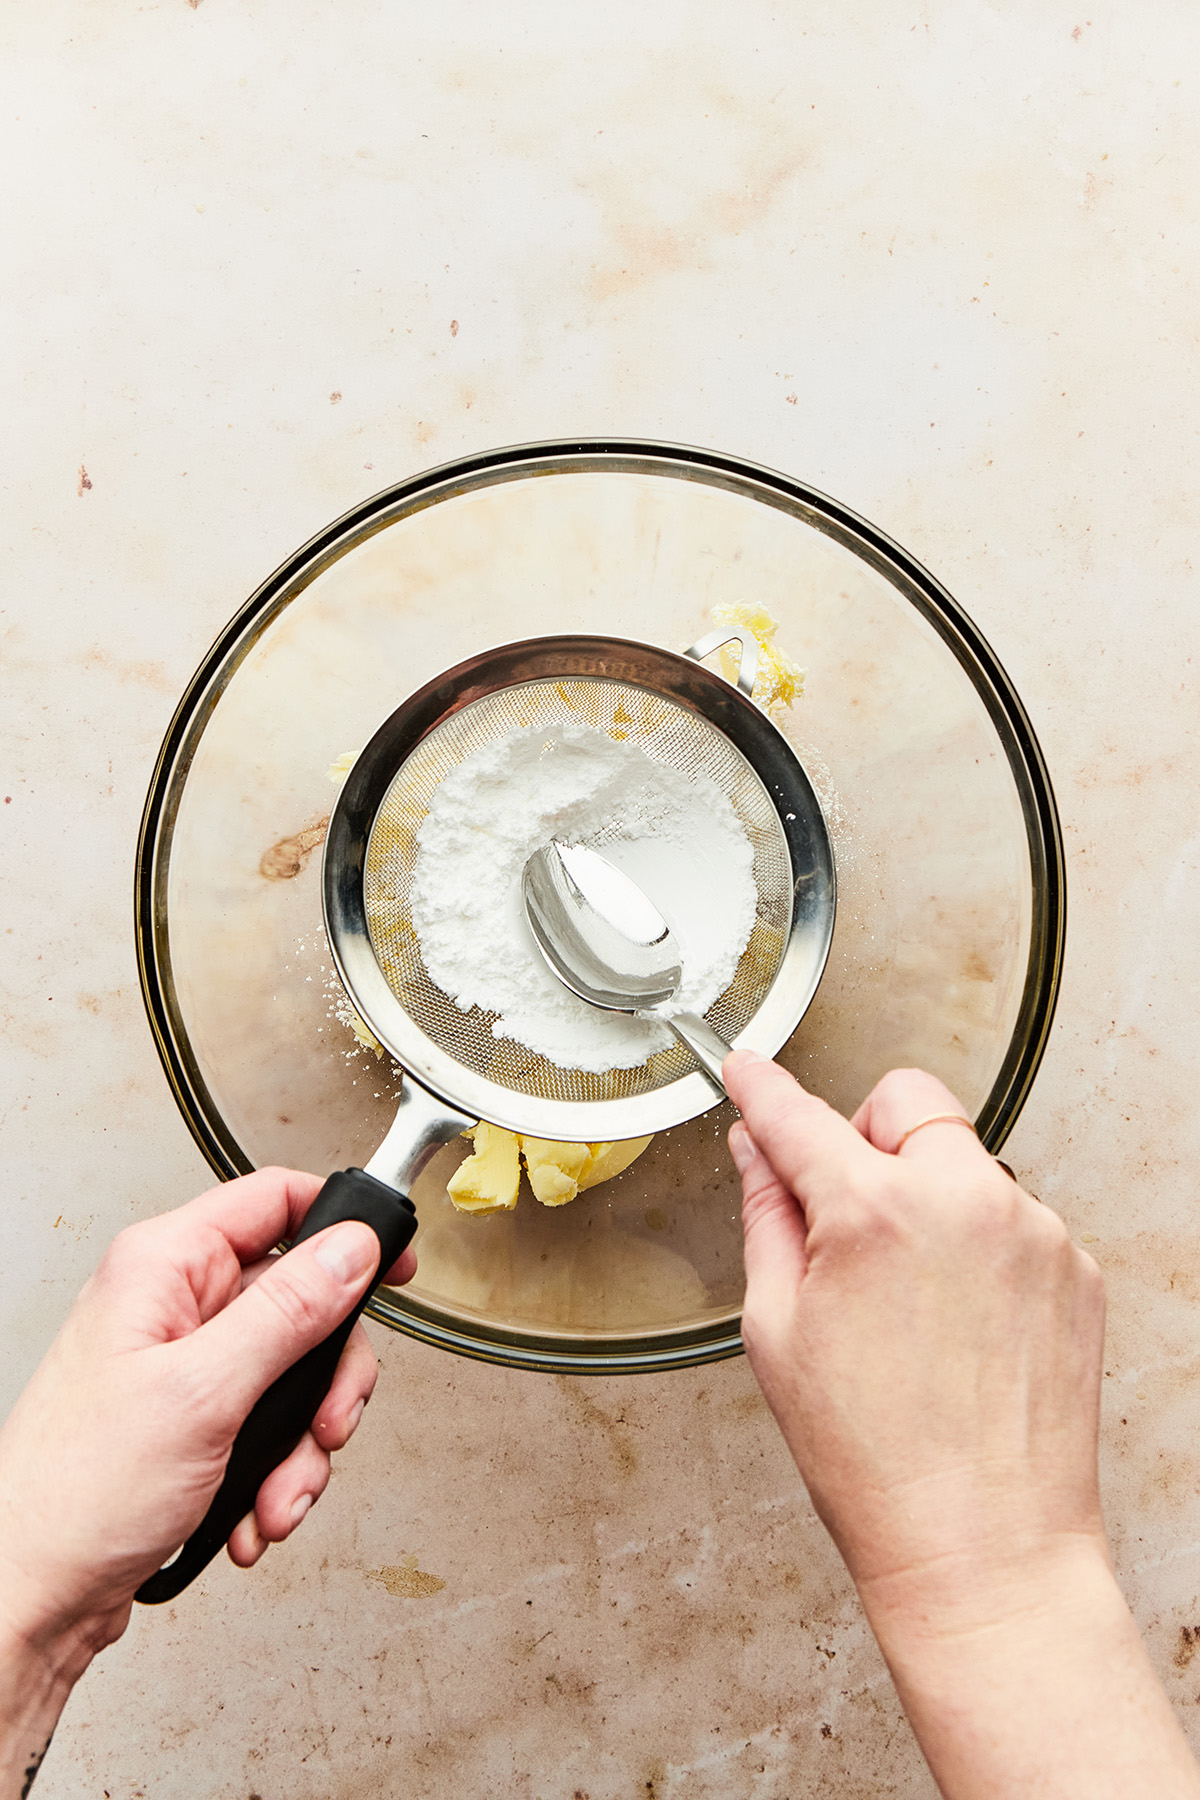 A hand sifting icing sugar into a bowl of butter by pressing it through a sieve using the back of a spoon.